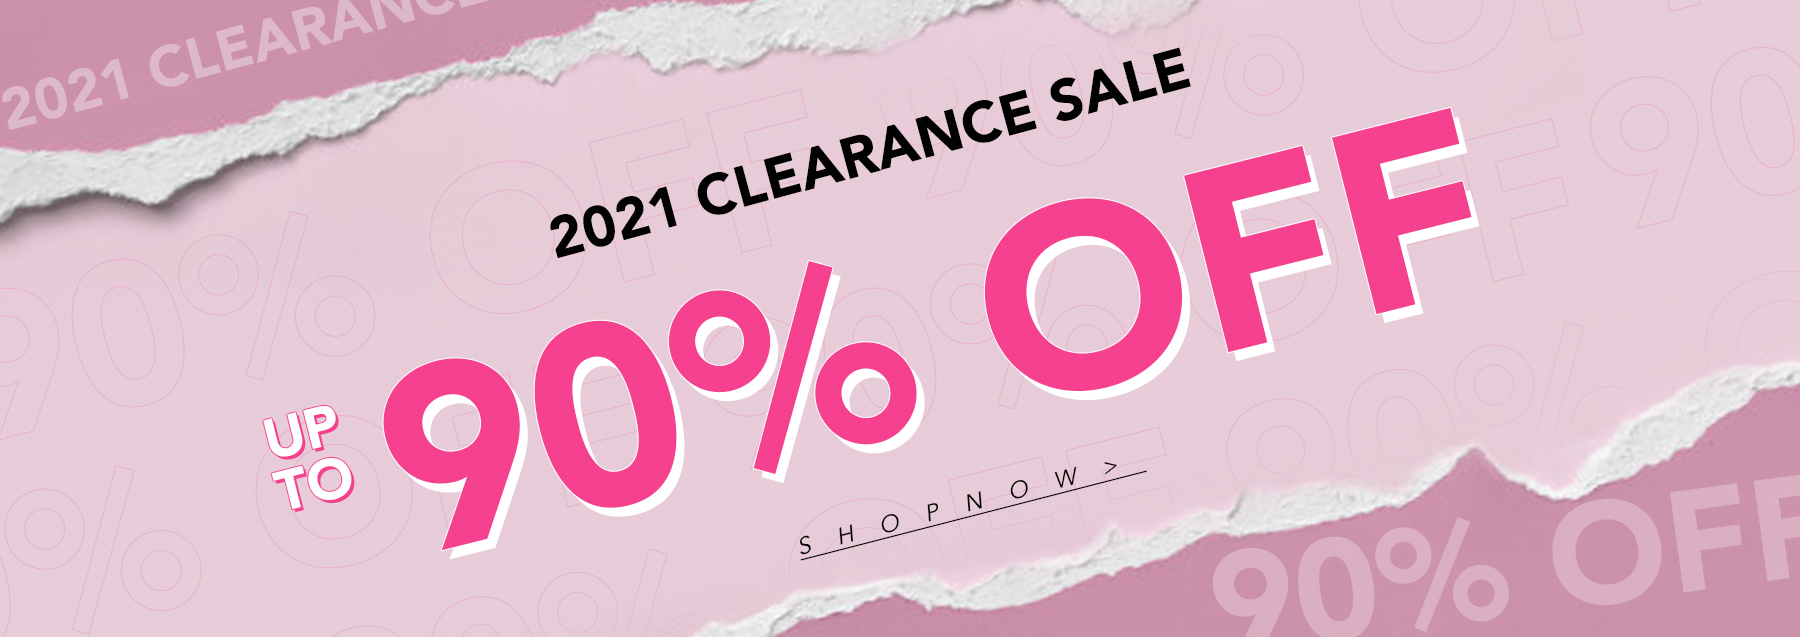 #2021 CLEARANCE SALE UP TO 90% OFF SHOP NOW